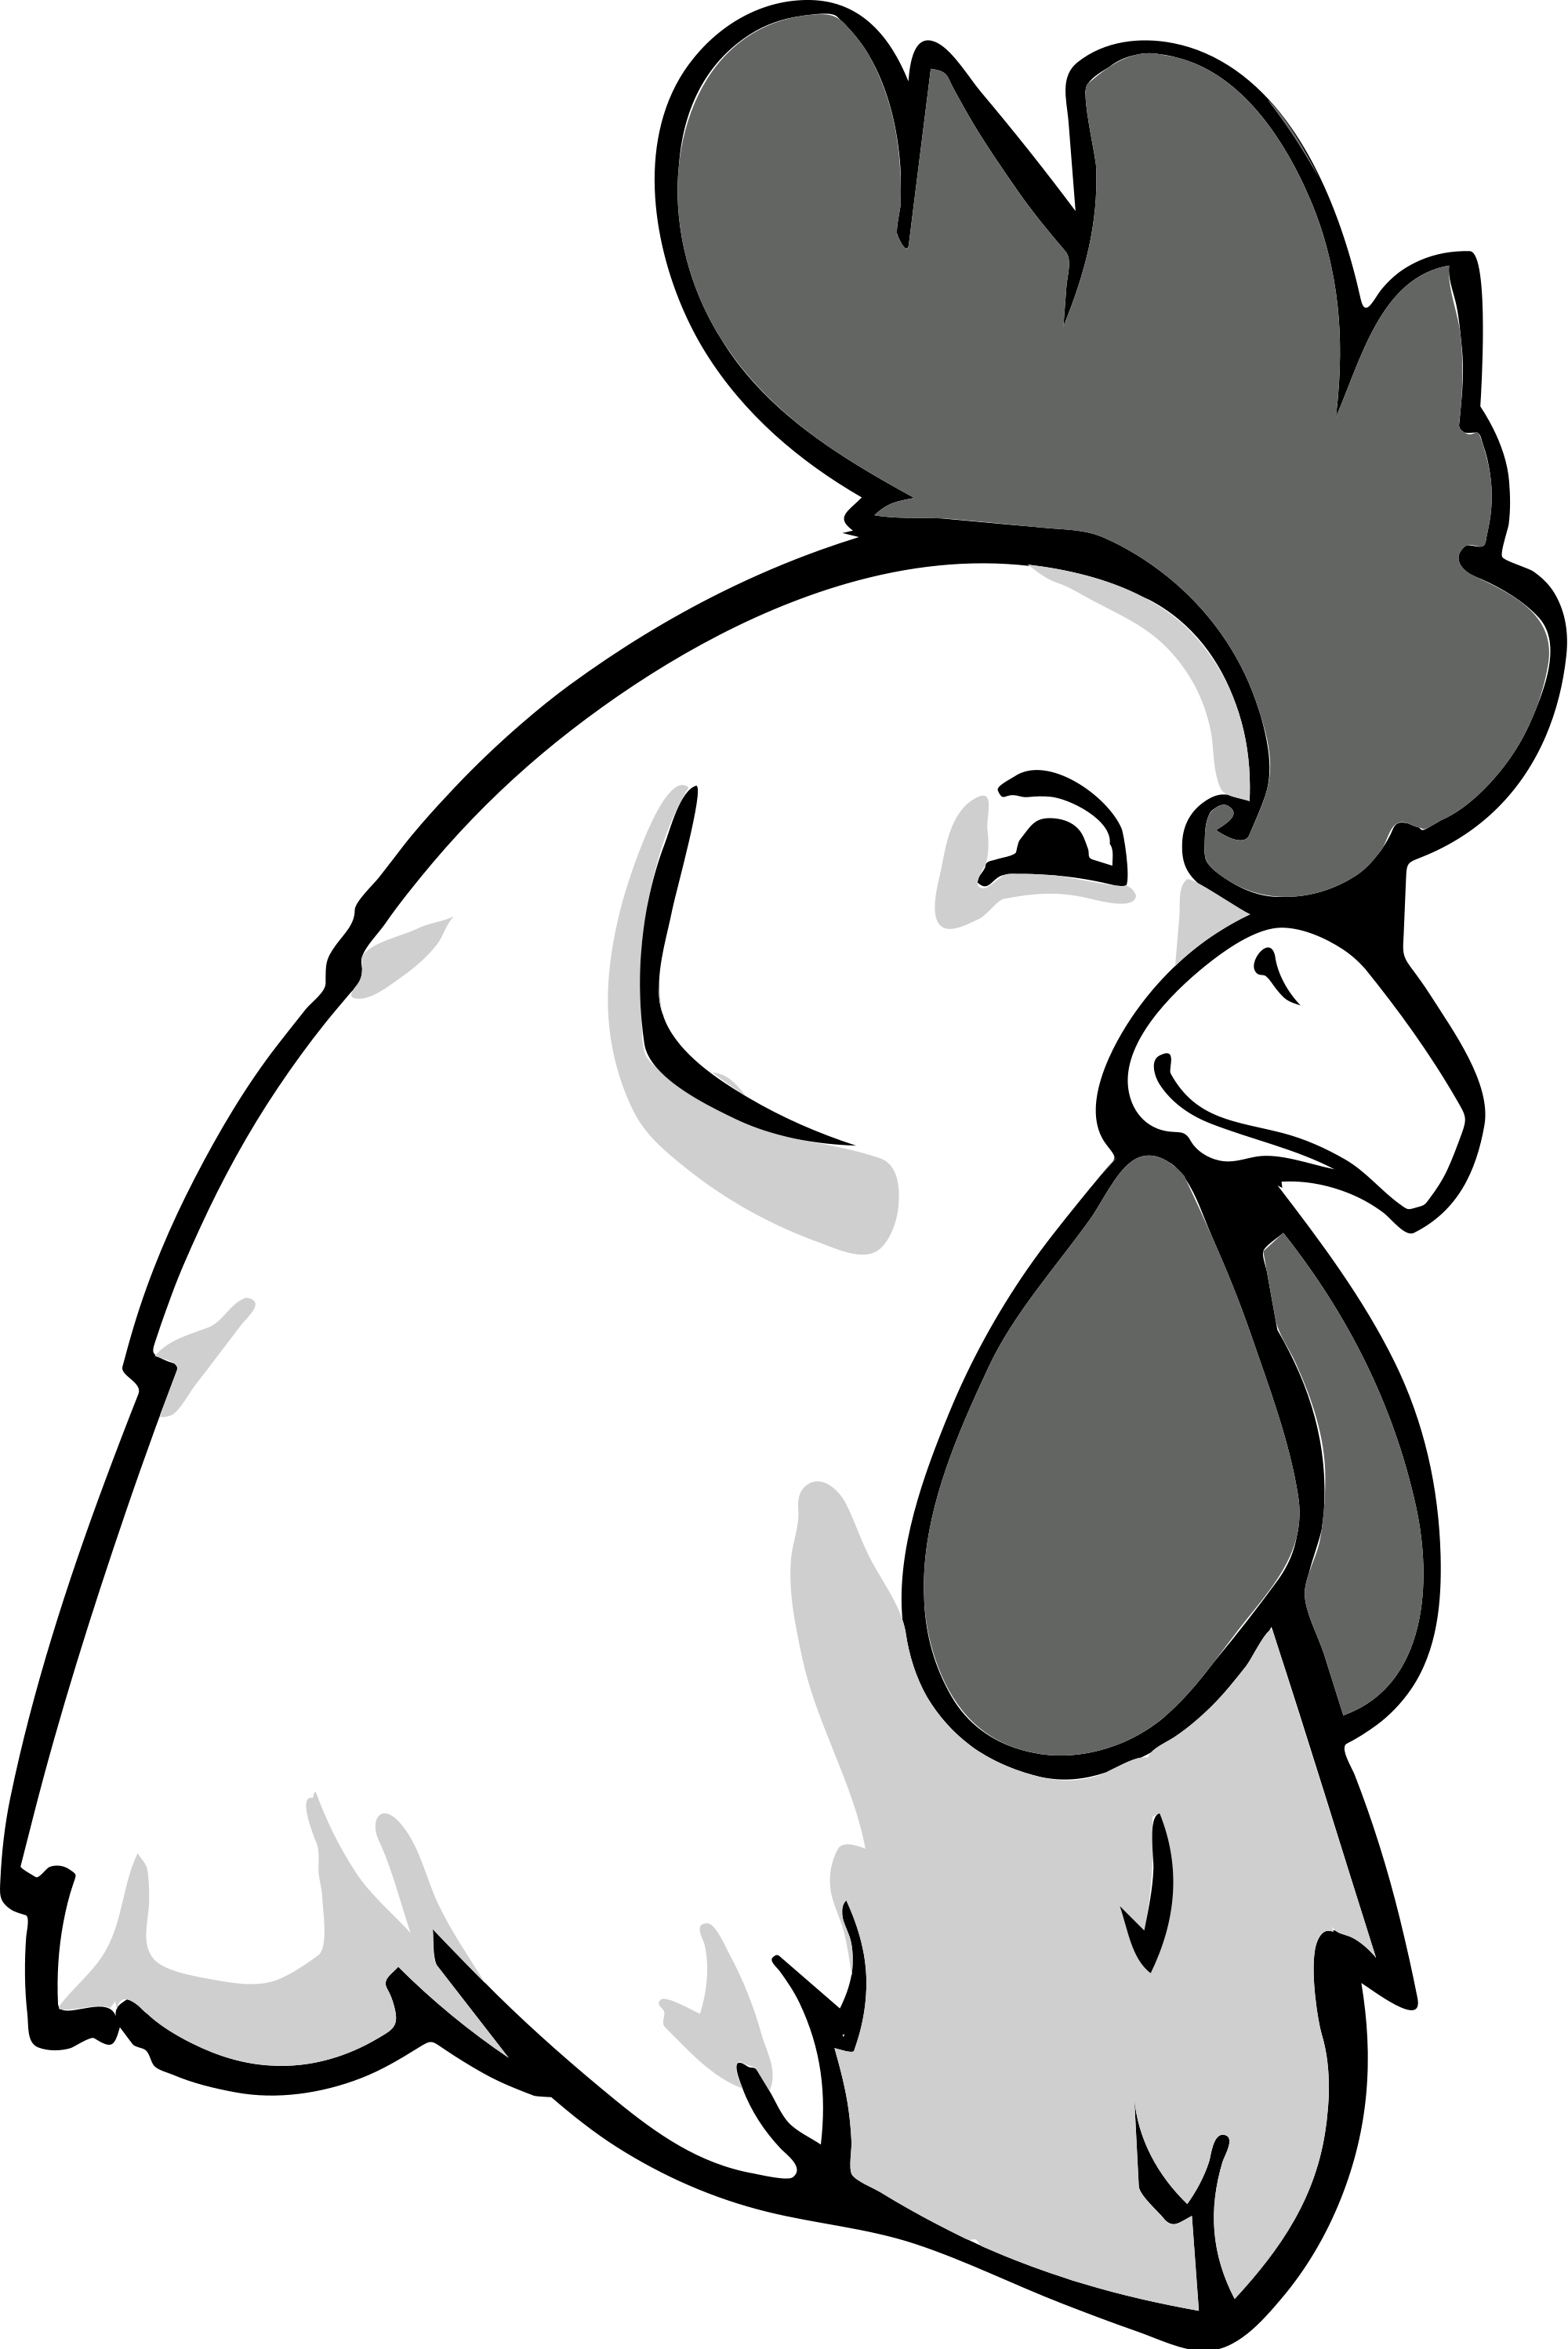 Rooster clipart svg. File bw wikimedia commons